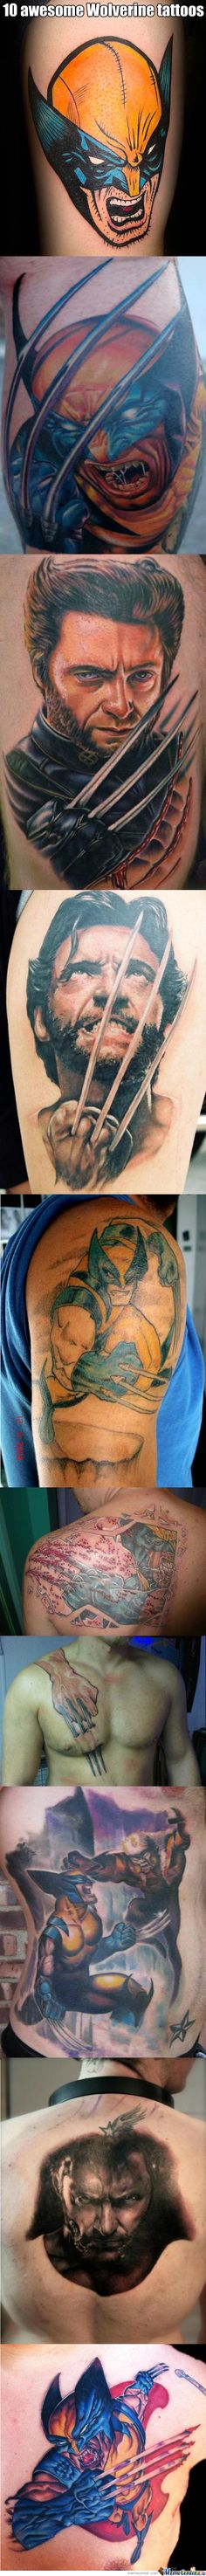 10 Awesome Wolverine Tattoos. (Sorry For The Long Post